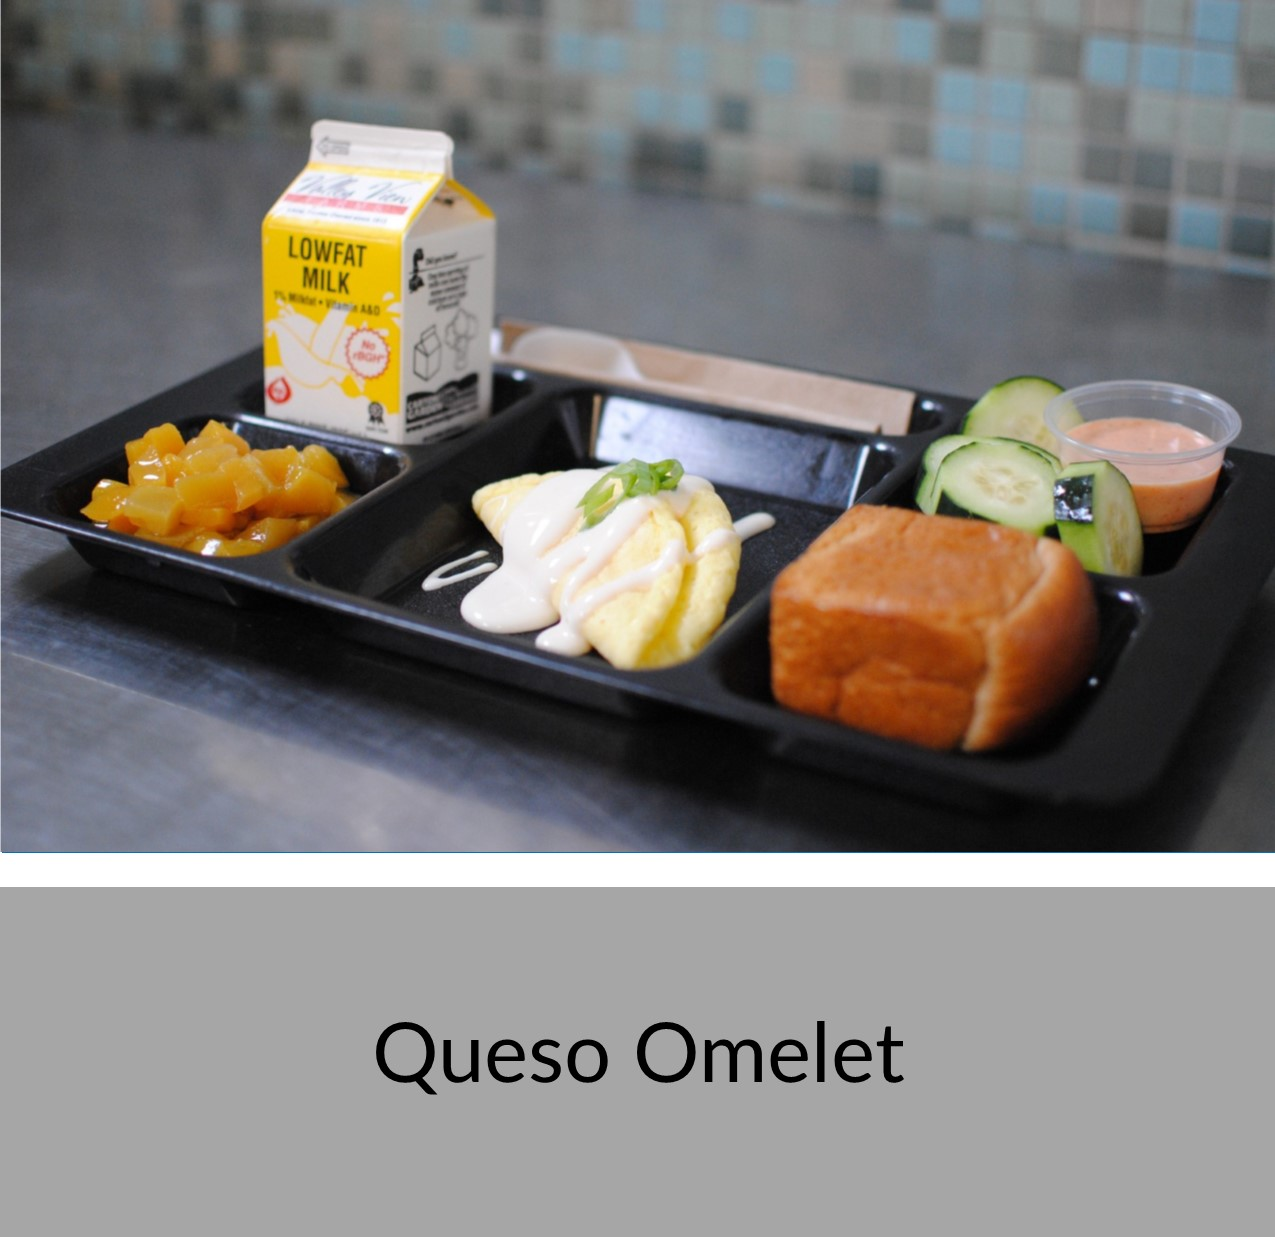 Queso Omelet